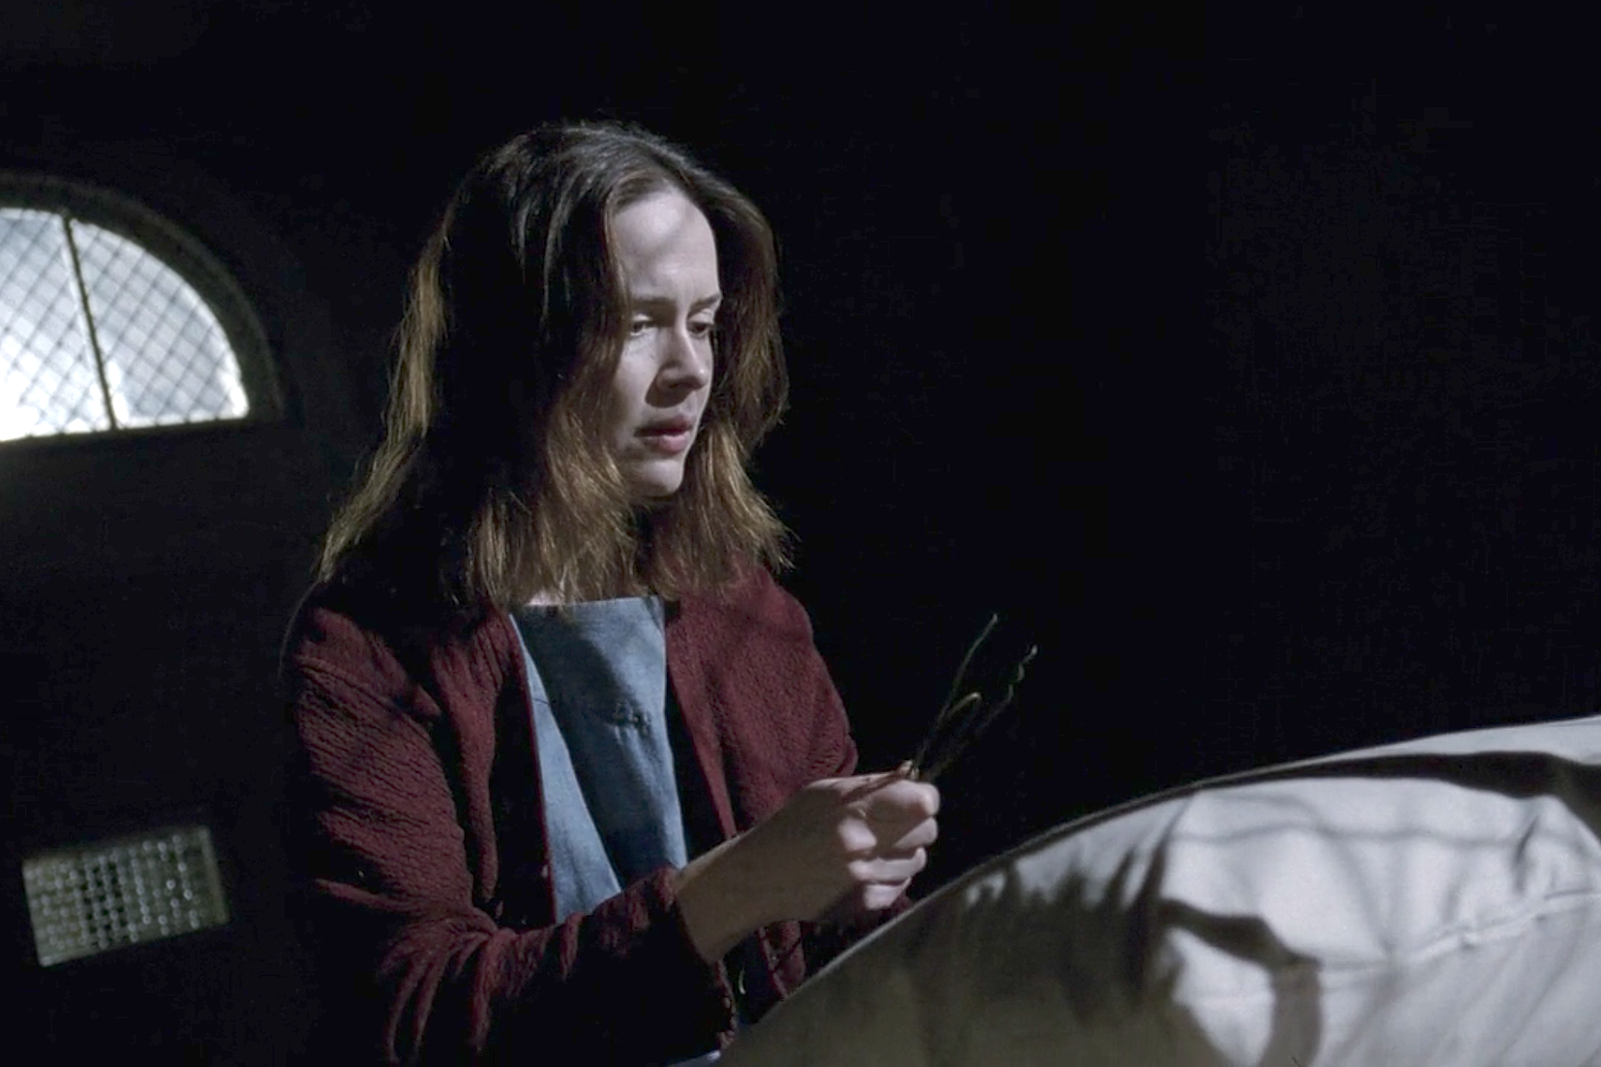 The Scariest 'American Horror Story' Scenes That Will Mess You Up